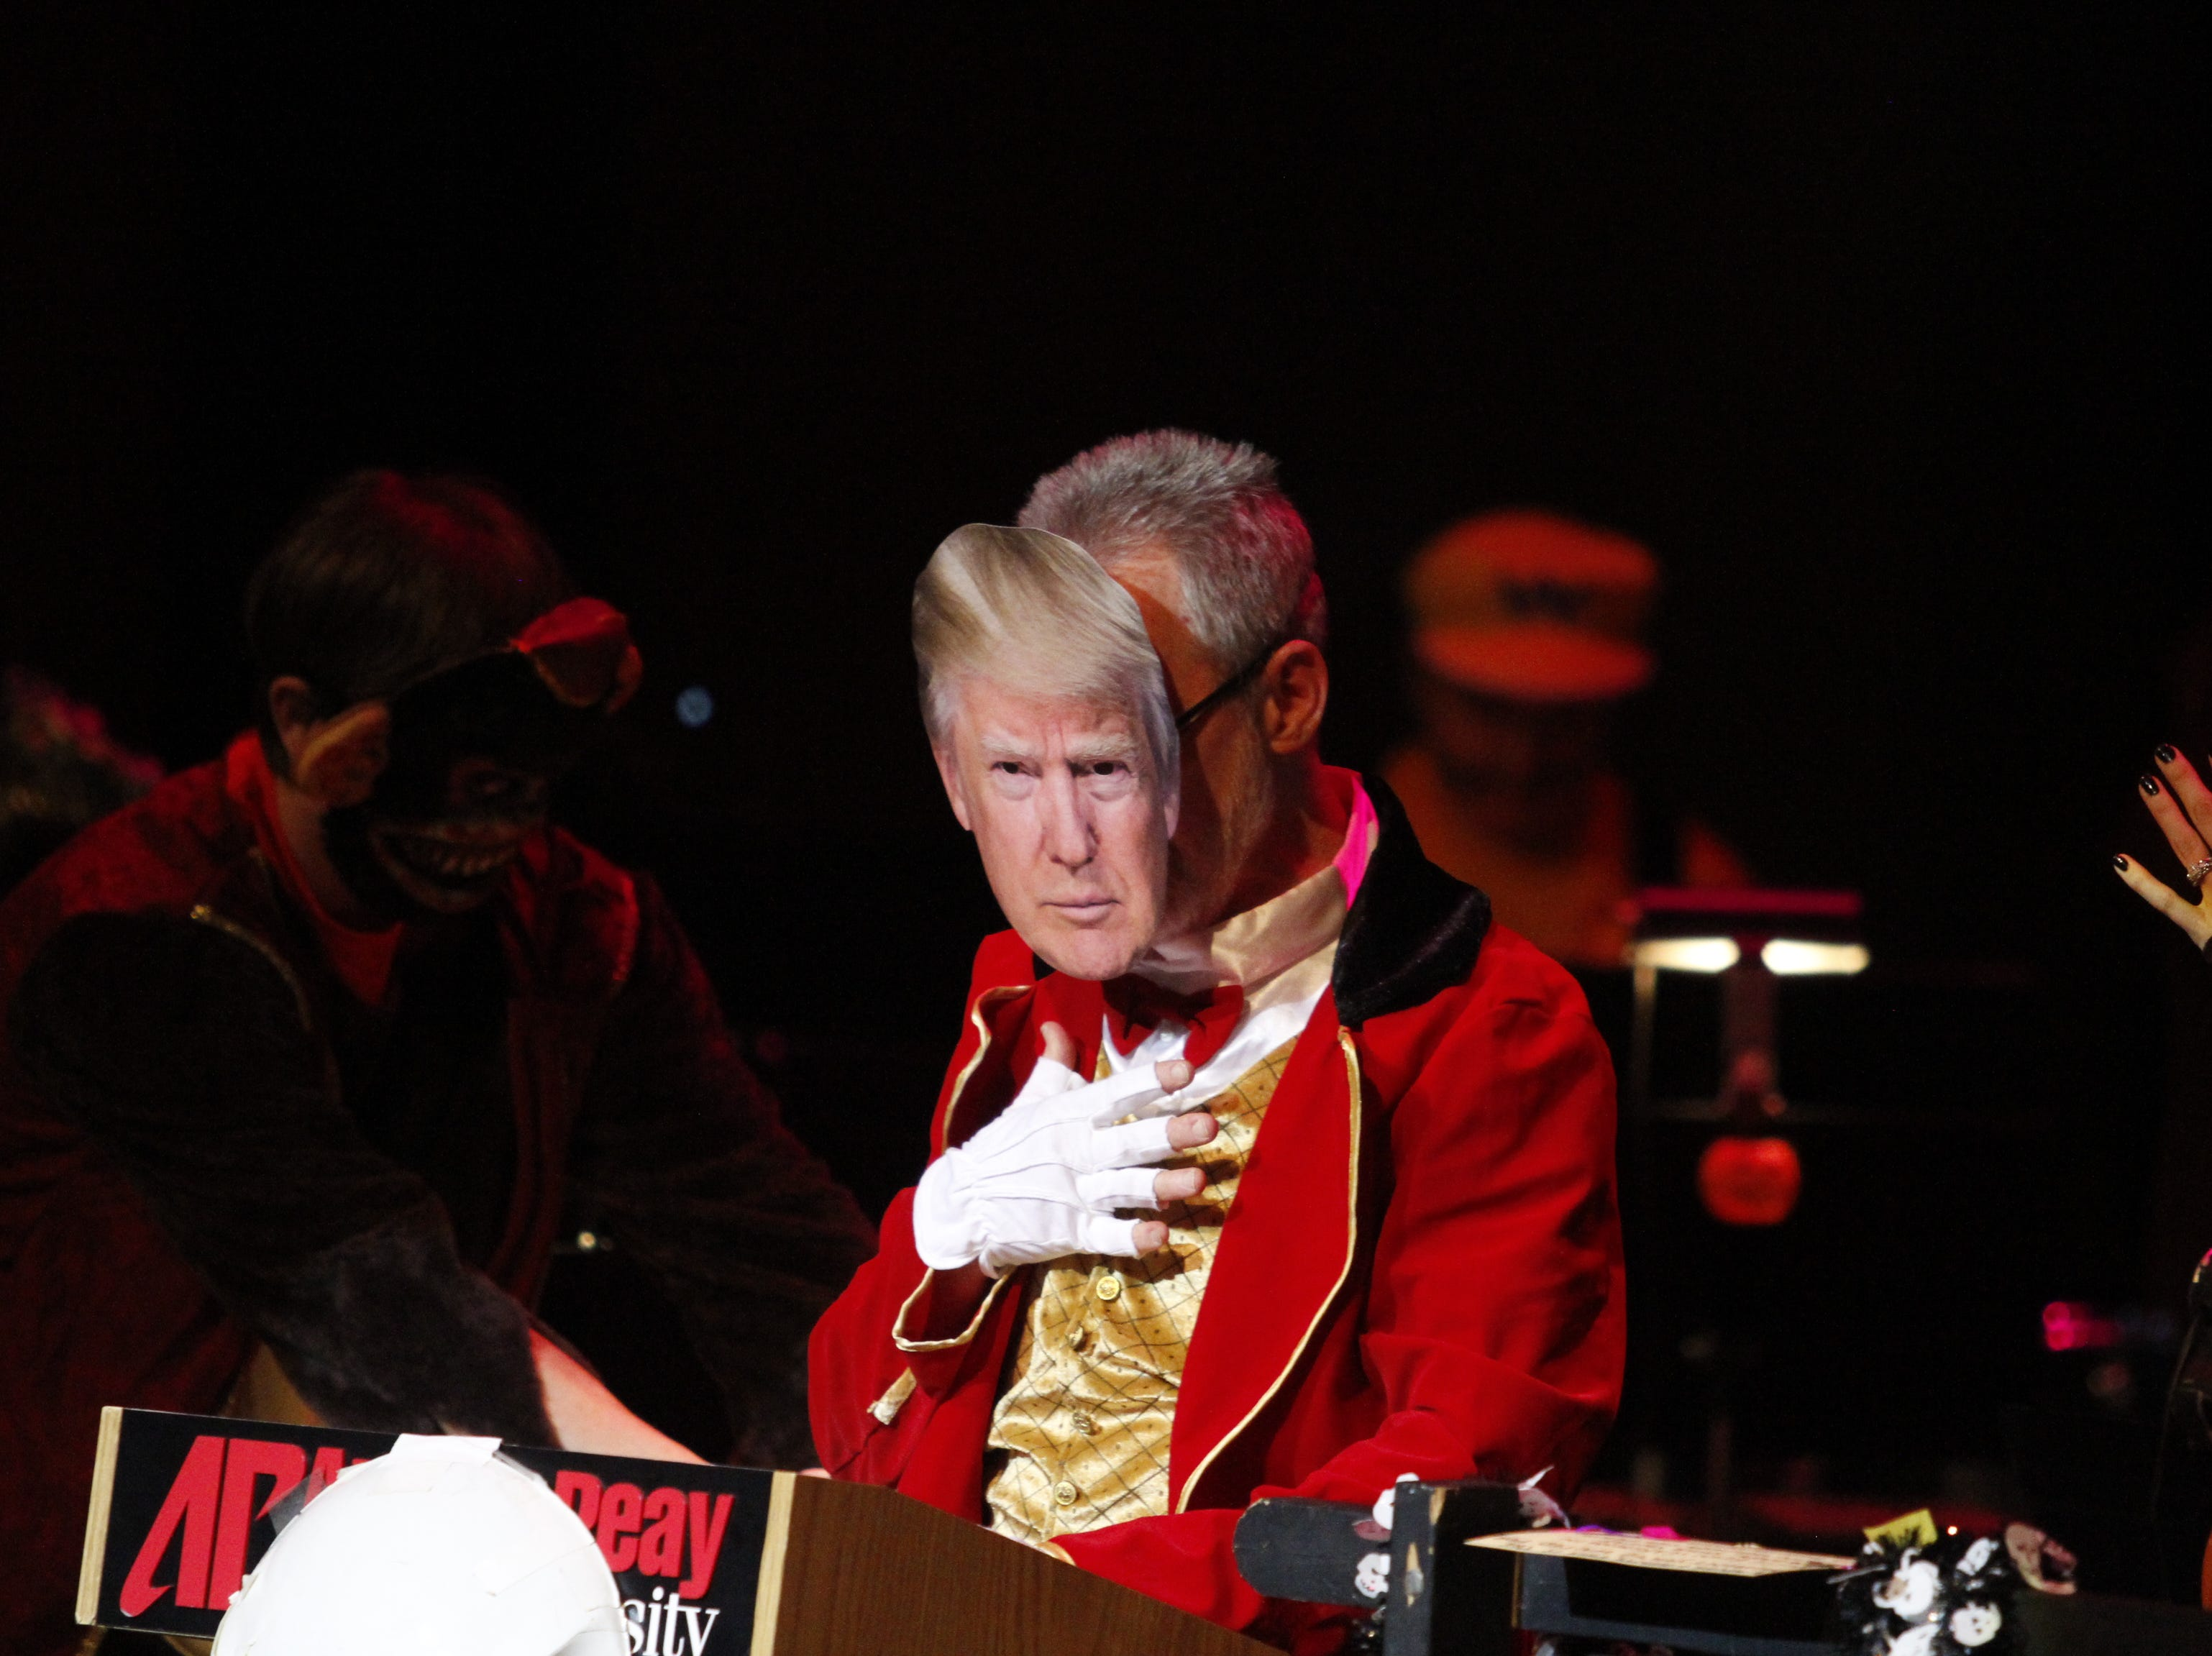 Donald Trump (David Steinquest) was one of many special guests at this year's APSU Percussion Ensemble Halloween Concert on Friday, October 26, 2018.